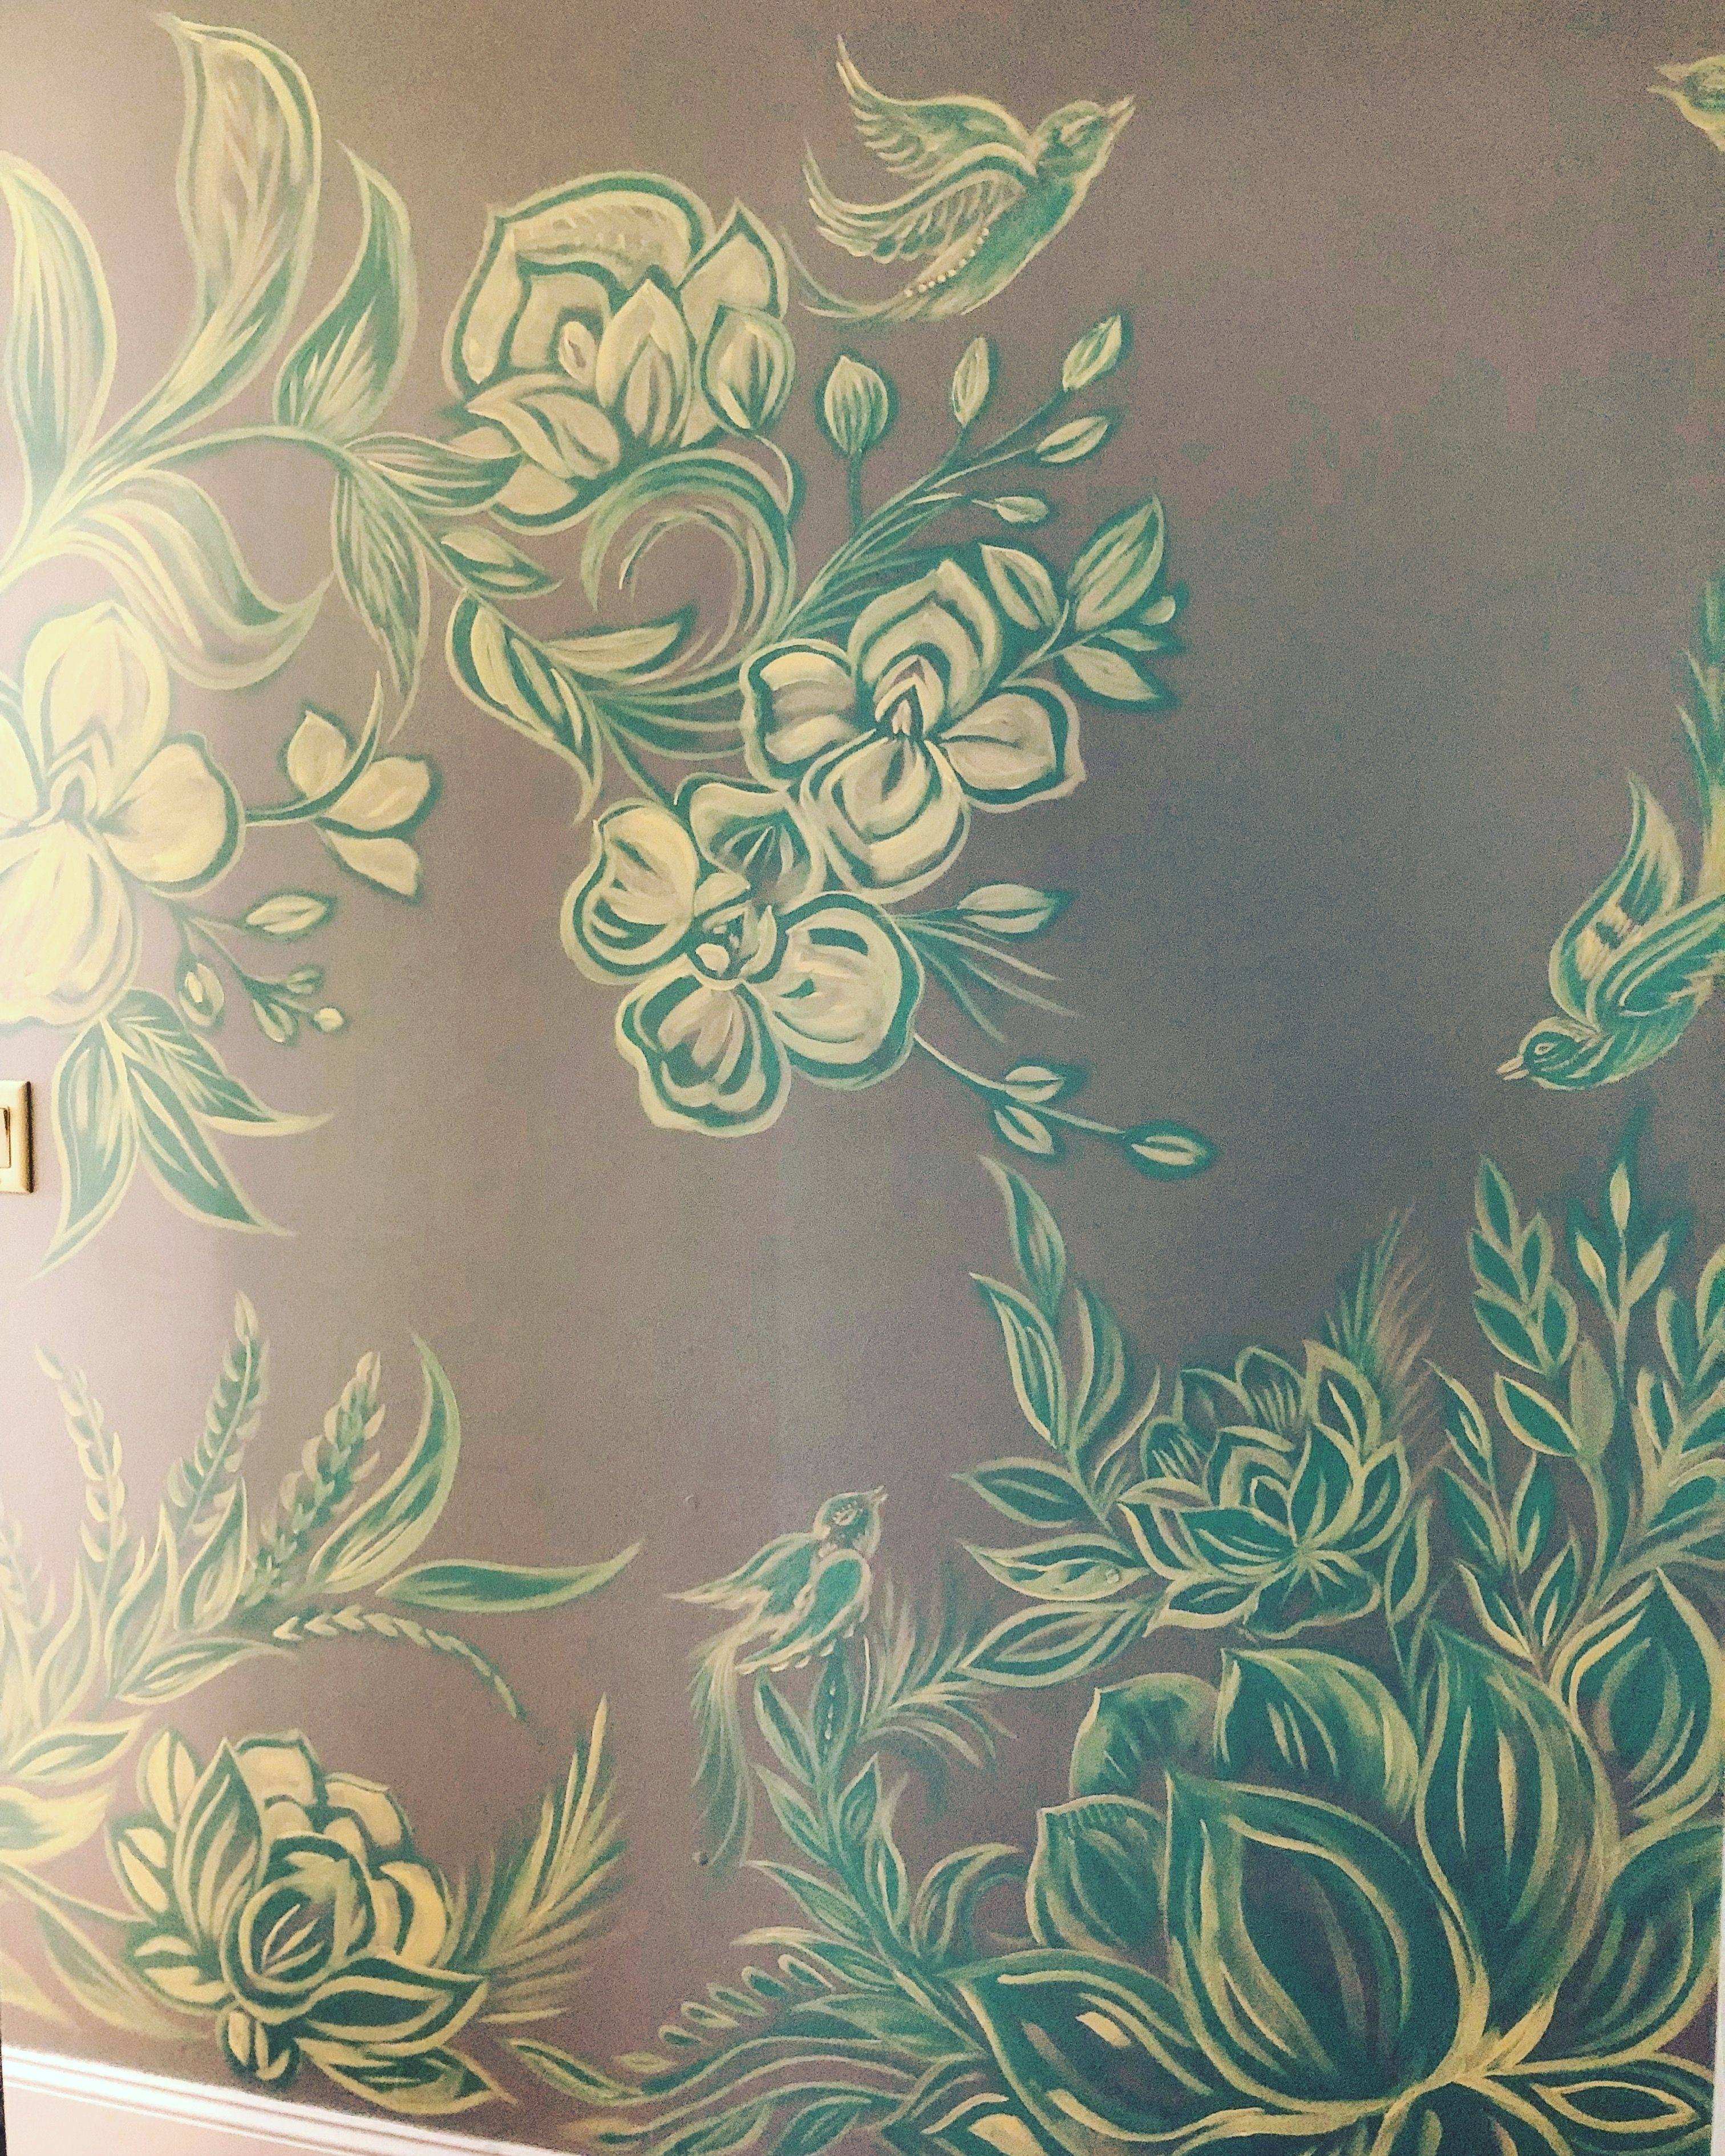 Wallart #mural #floral #decor #interior #lotus #theeyeofhenna intended for Henna Wall Art (Image 20 of 20)